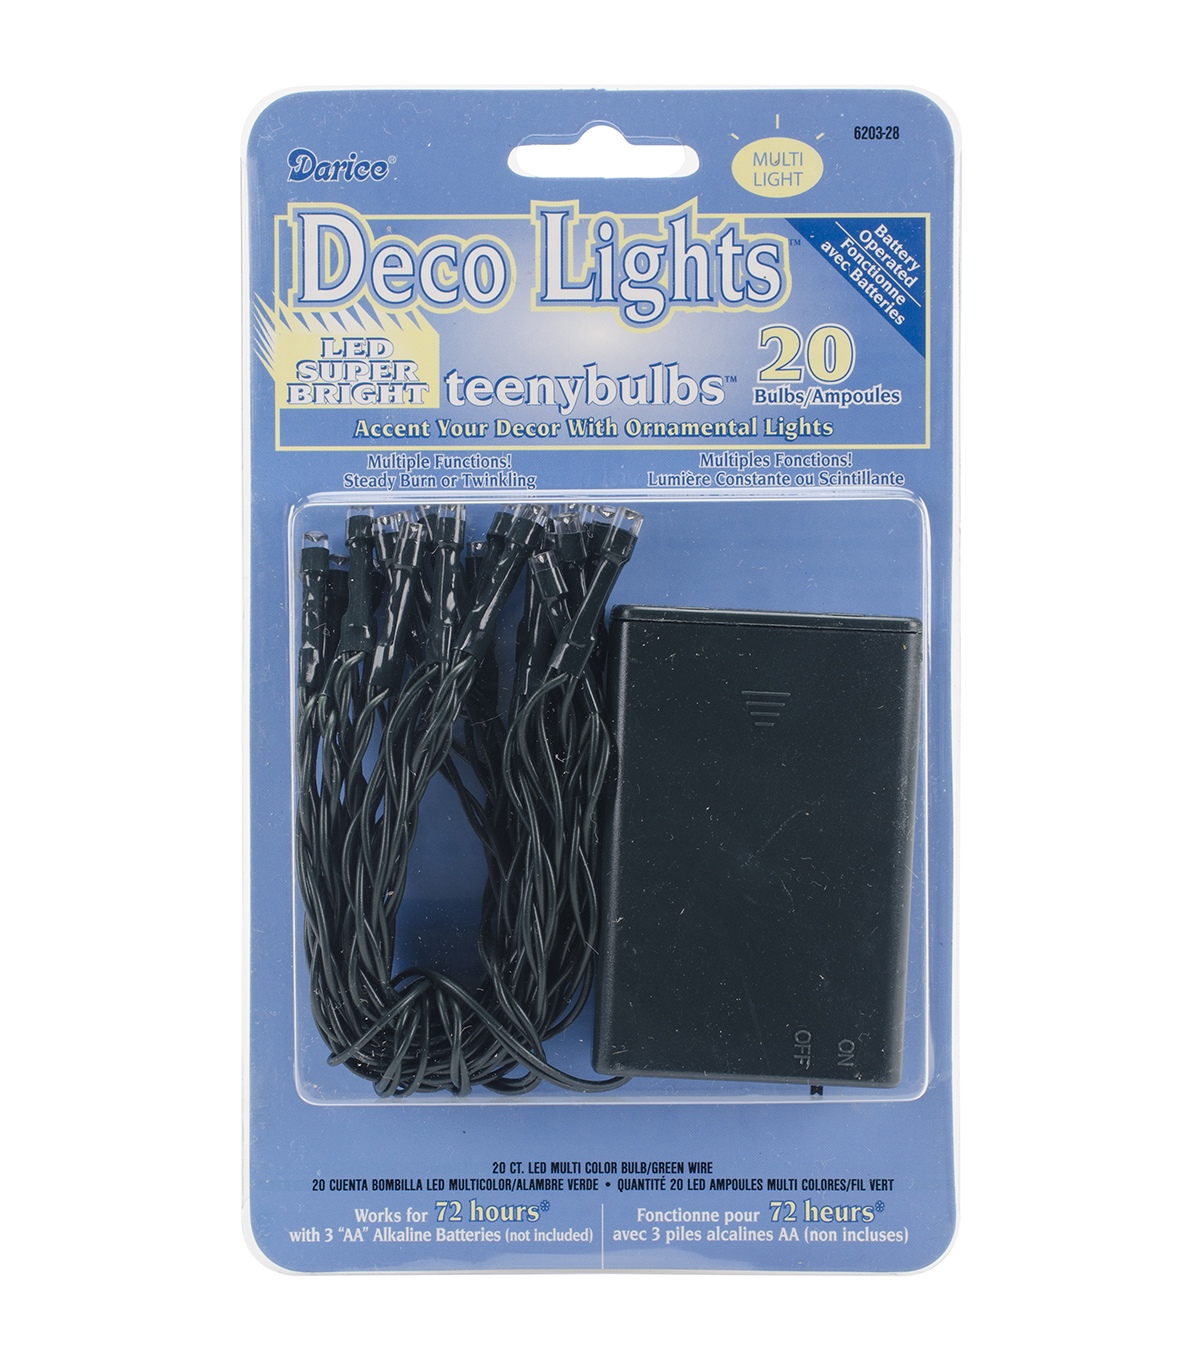 Darice 20 Ct Battery Operated Deco Lights With Teeny Bulbs-Green